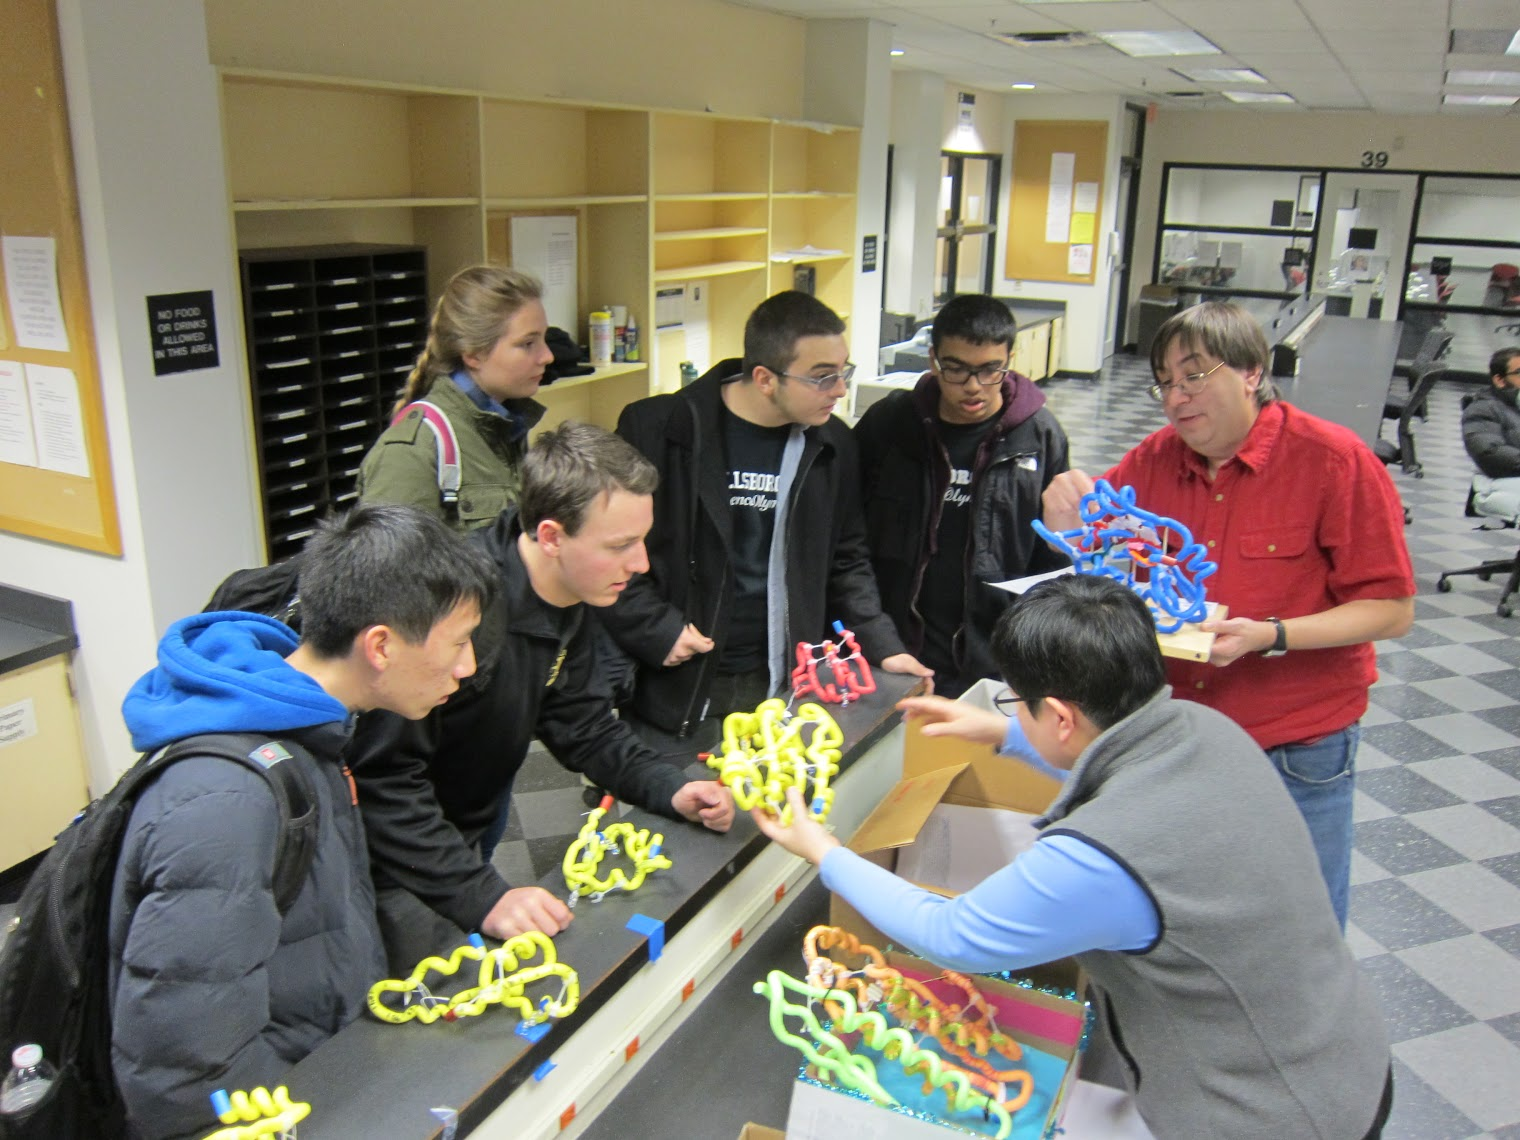 Teams are scored on protein models built in advance, smaller models built during the competition, and a written exam